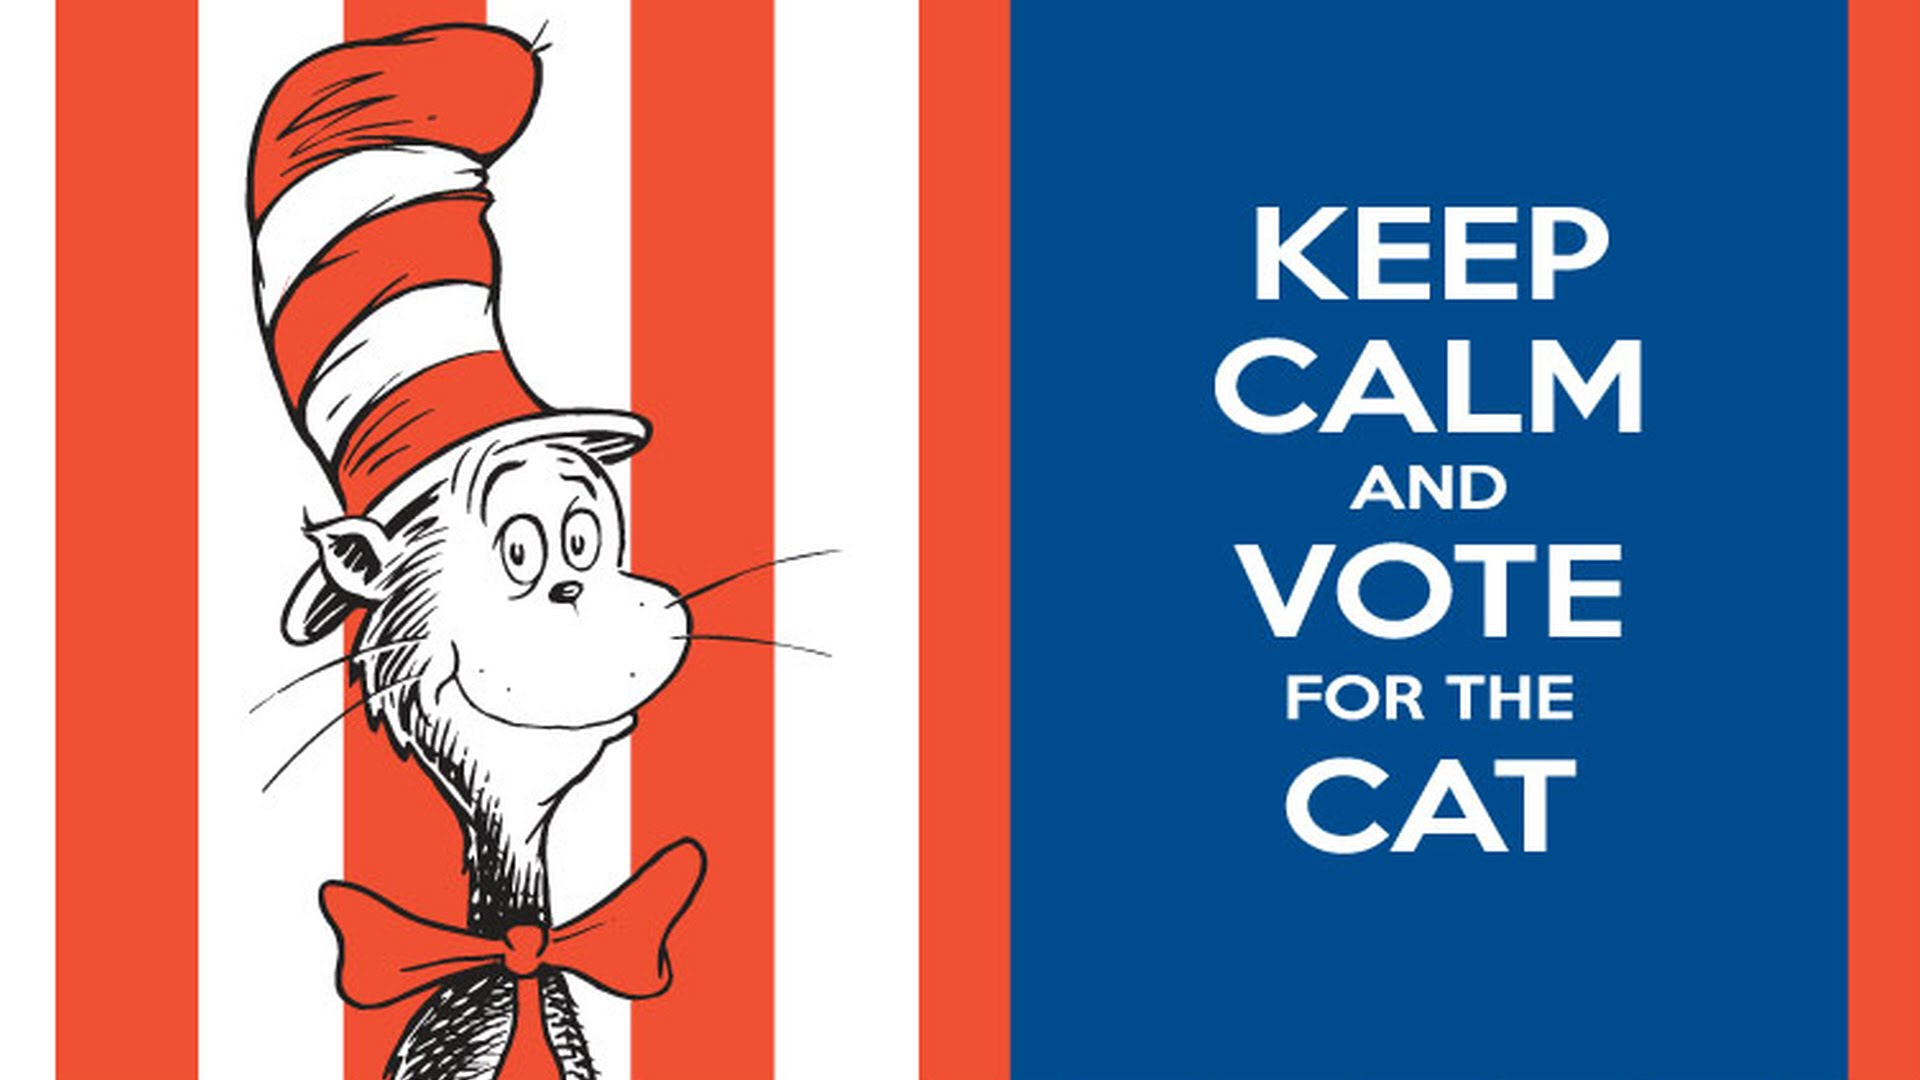 Cat In The Hat Wallpaper Free Download On Clipartmag